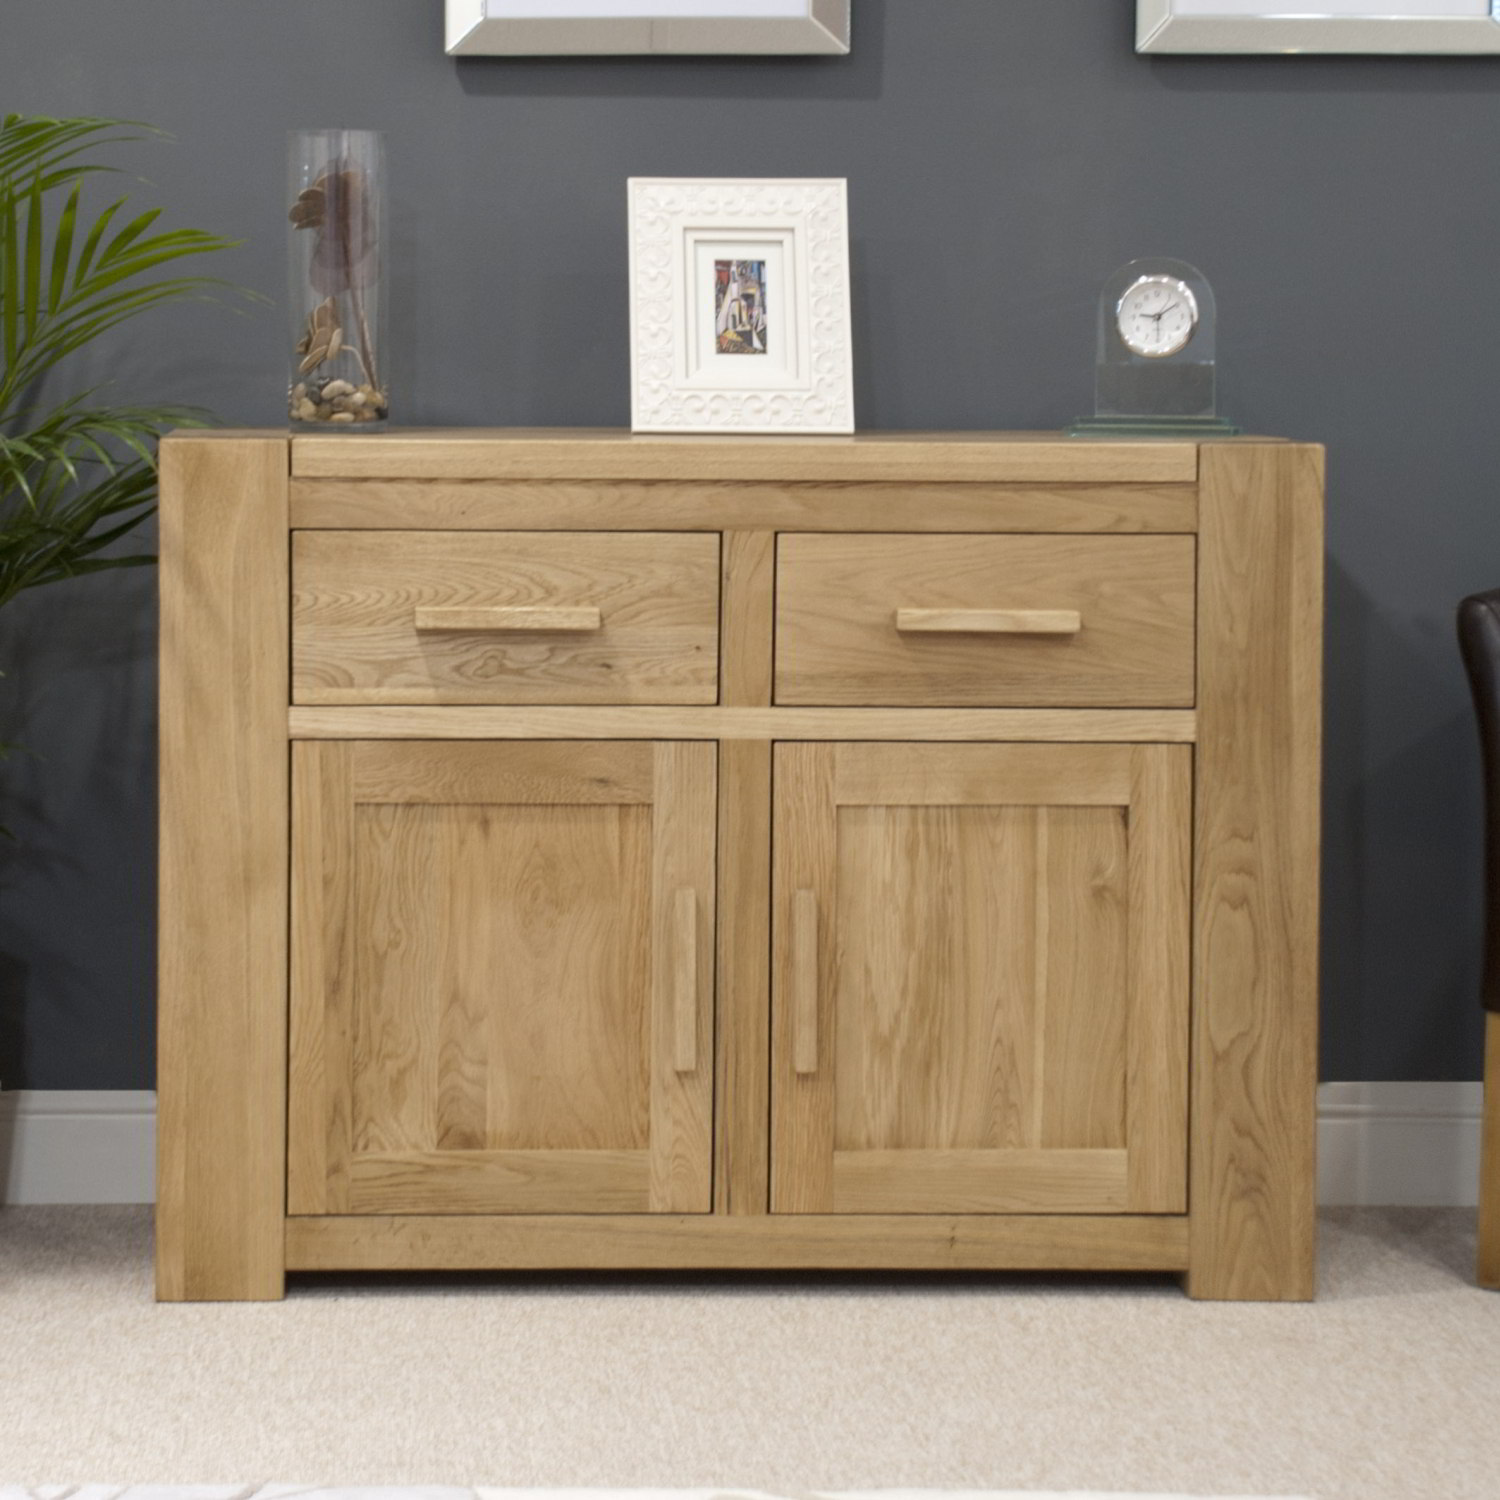 Pemberton solid oak living room furniture medium storage for Solid oak furniture